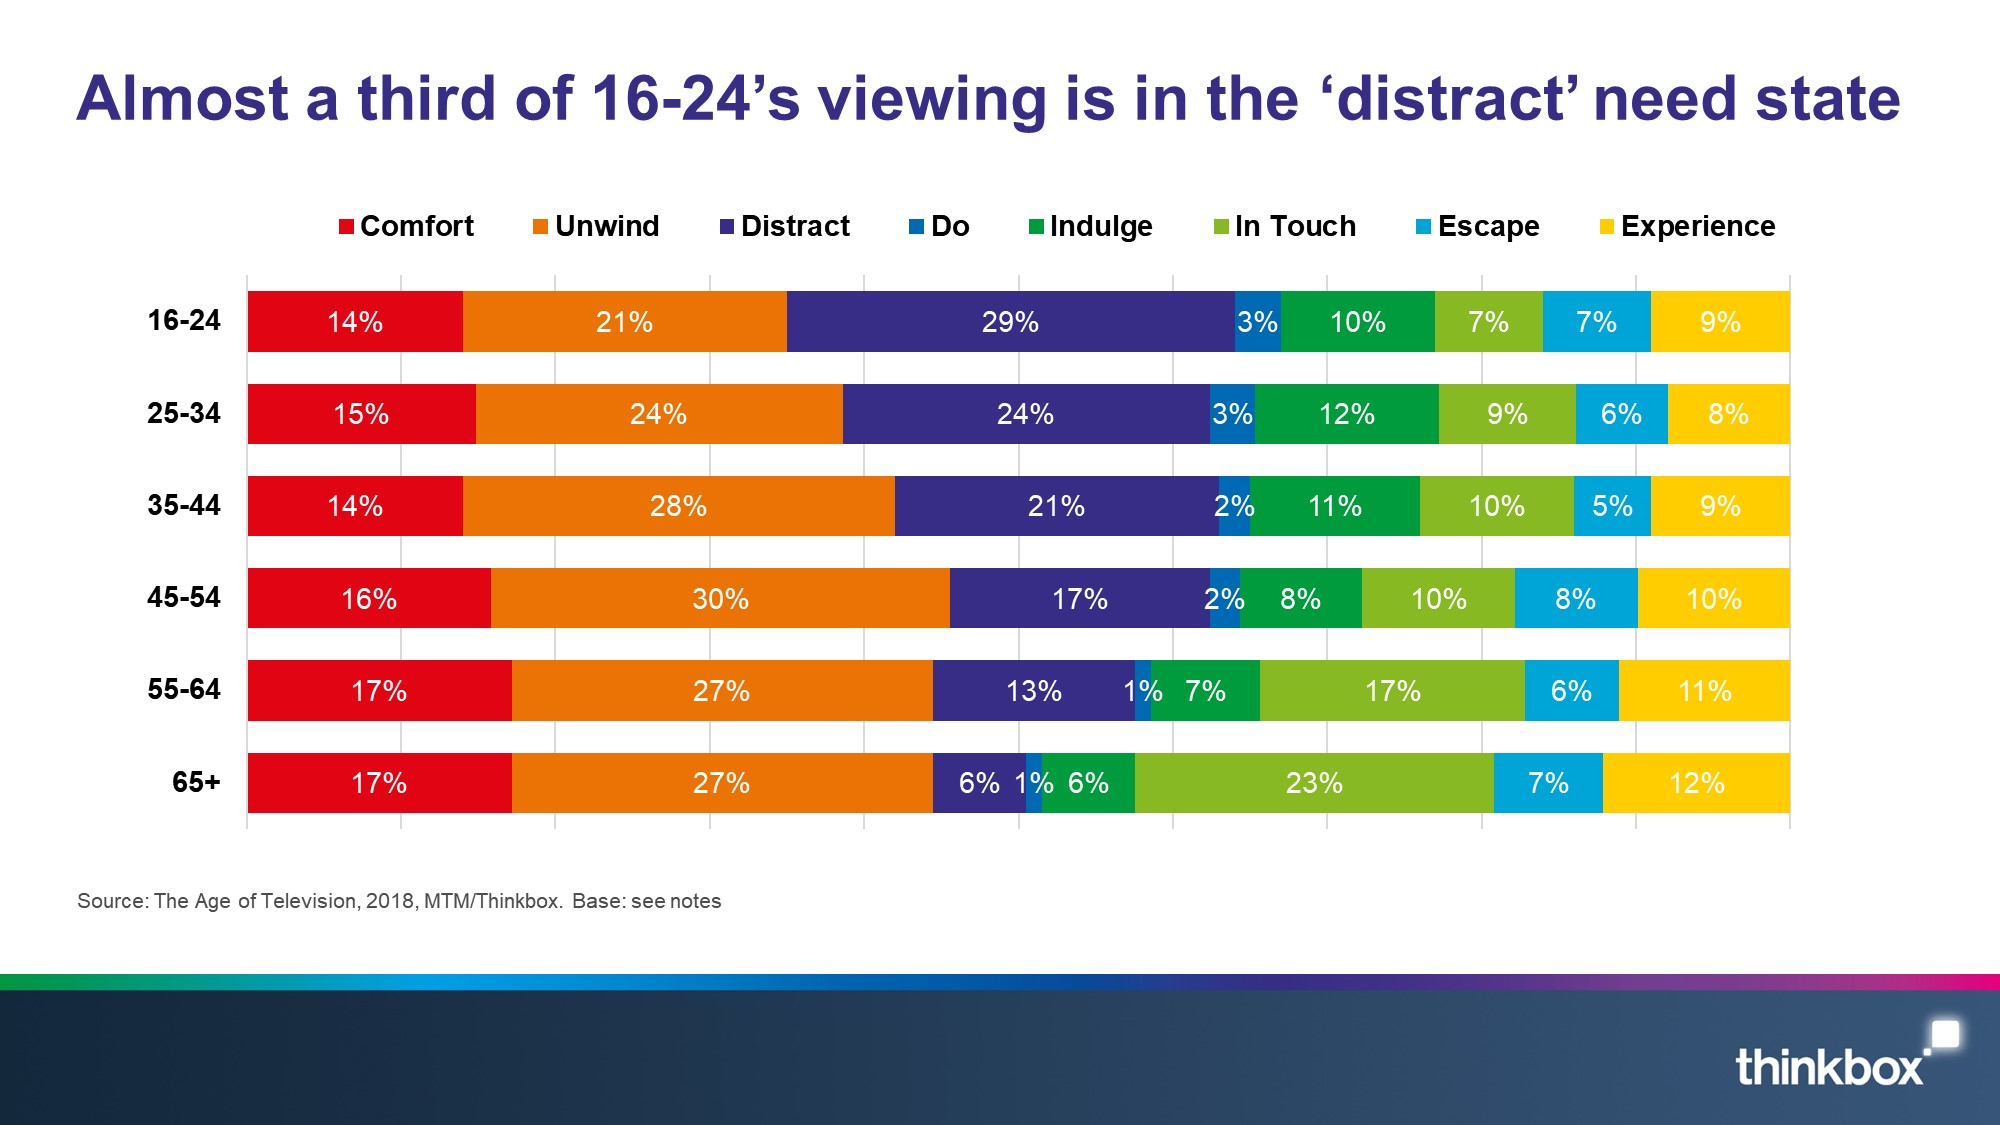 Almost a third of 16-24's viewing is in the 'distract' need state